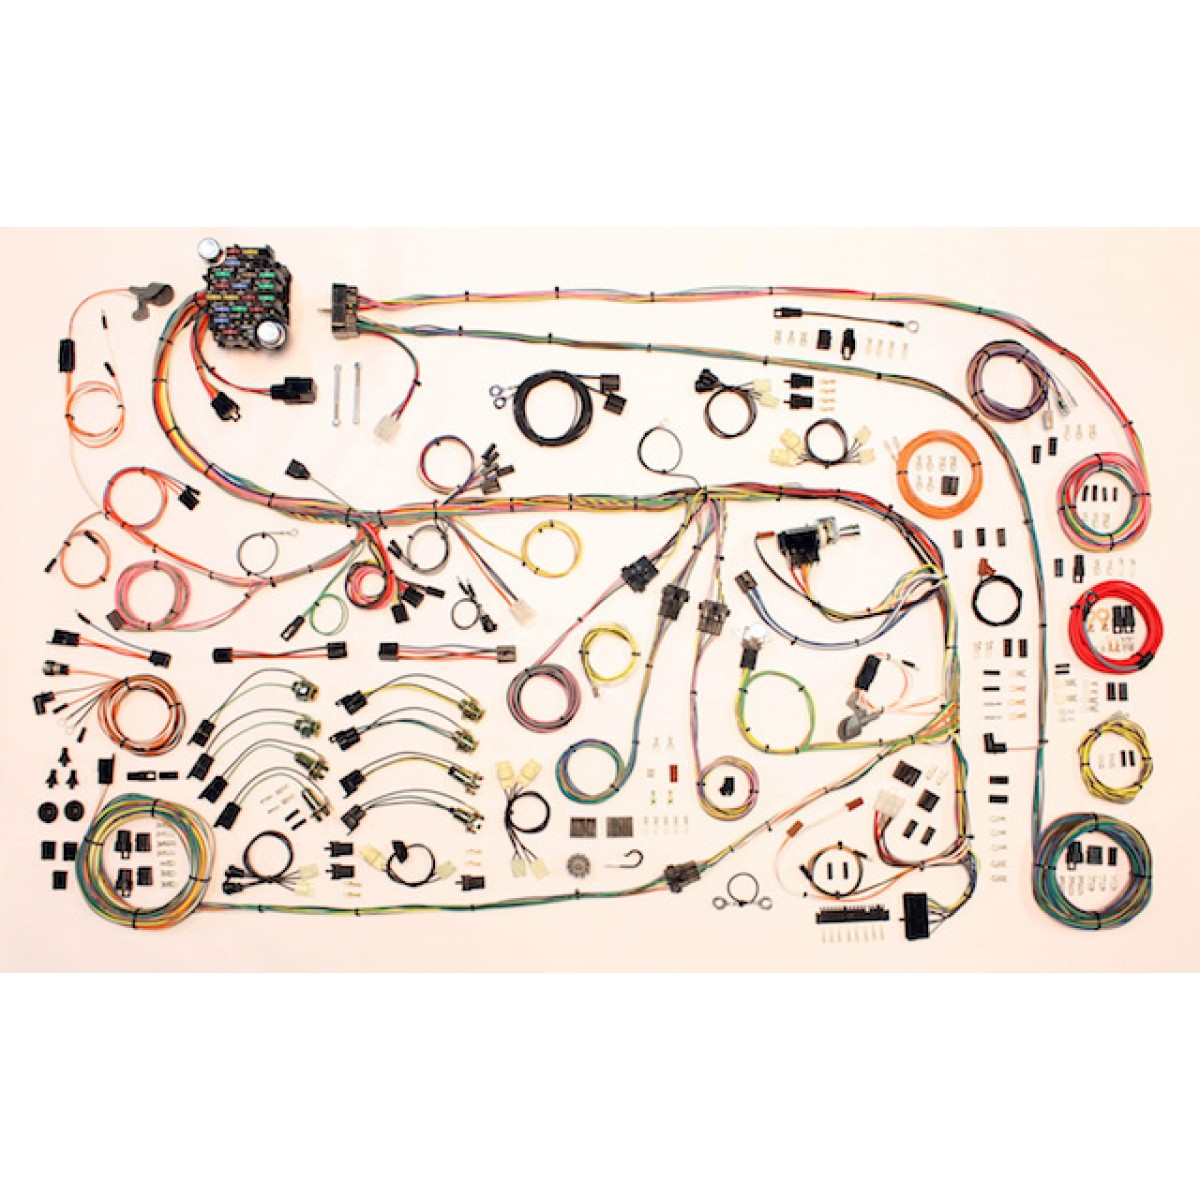 complete wiring harness kit 1967 75 plymouth barracuda part rh code510 com  68 Barracuda Wiring Schematic 68 Barracuda Wiring Schematic